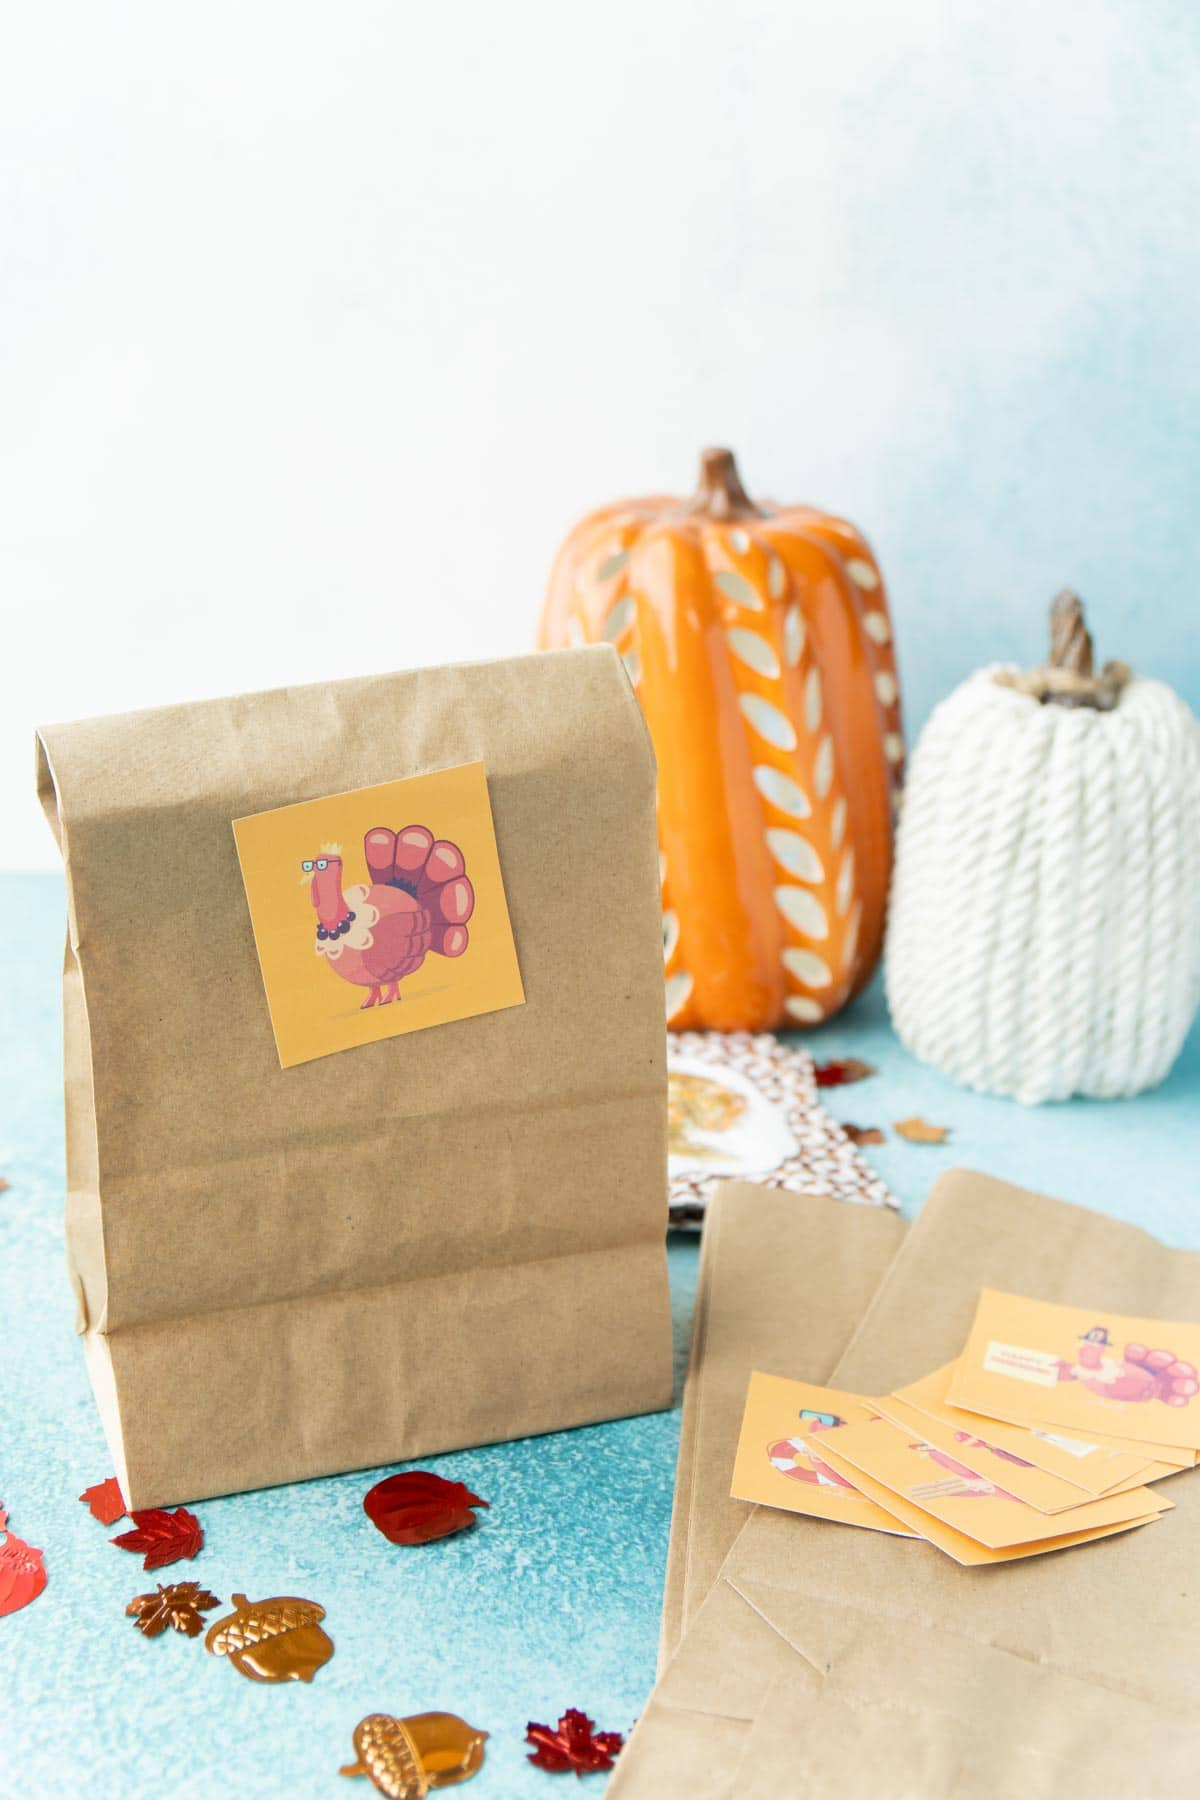 Paper bag with a turkey hunt card on it